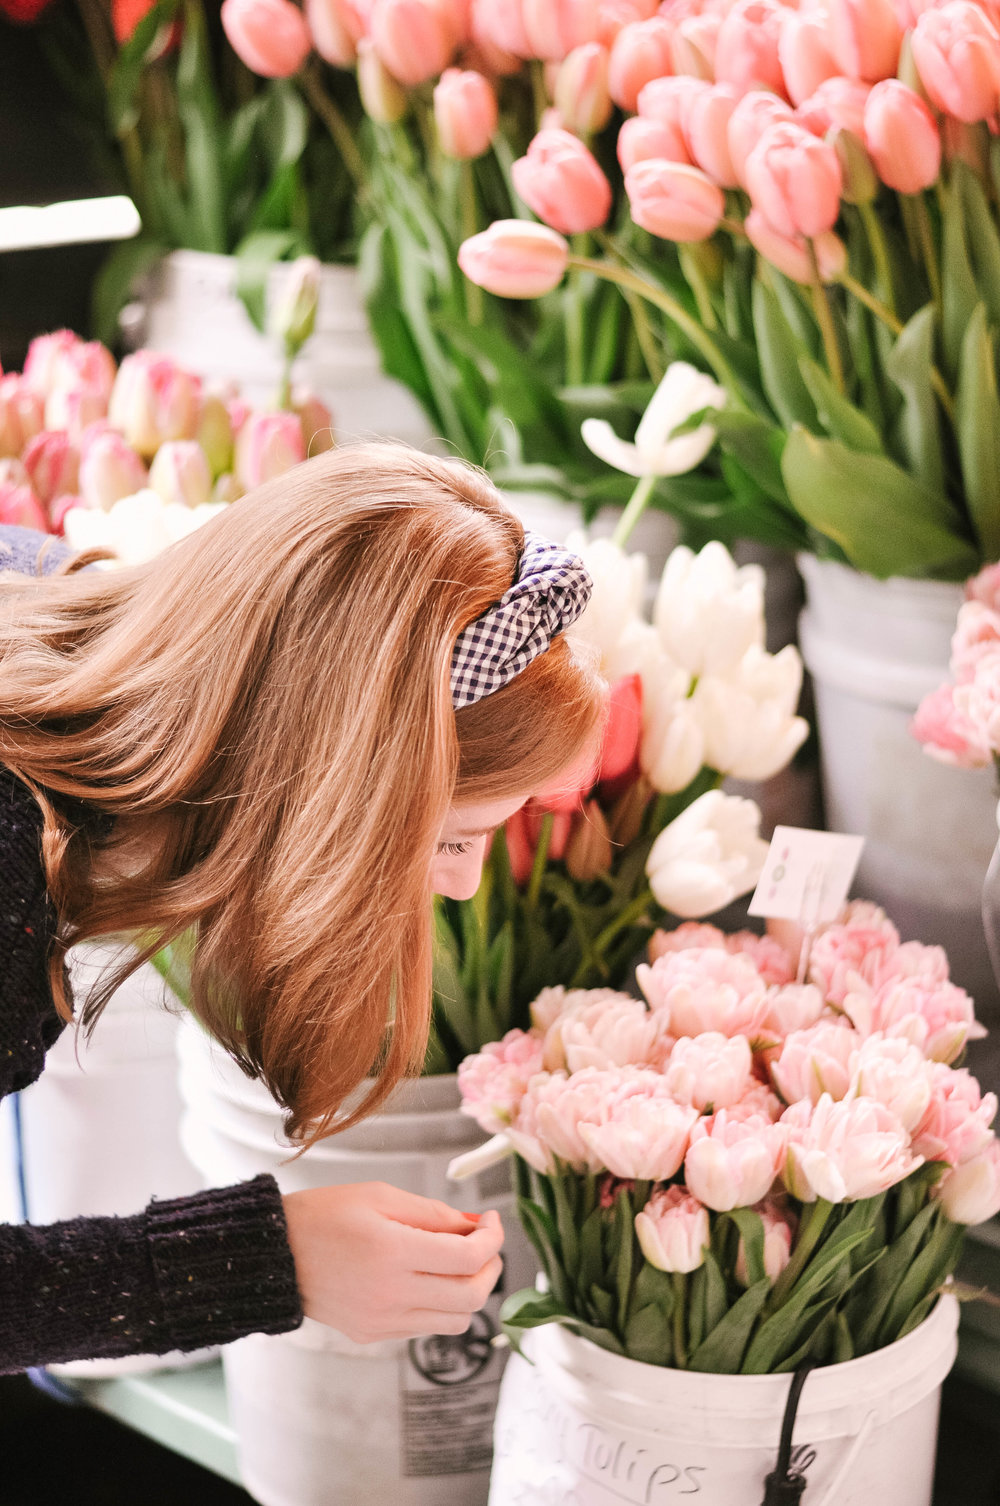 Woman at tulip flower market